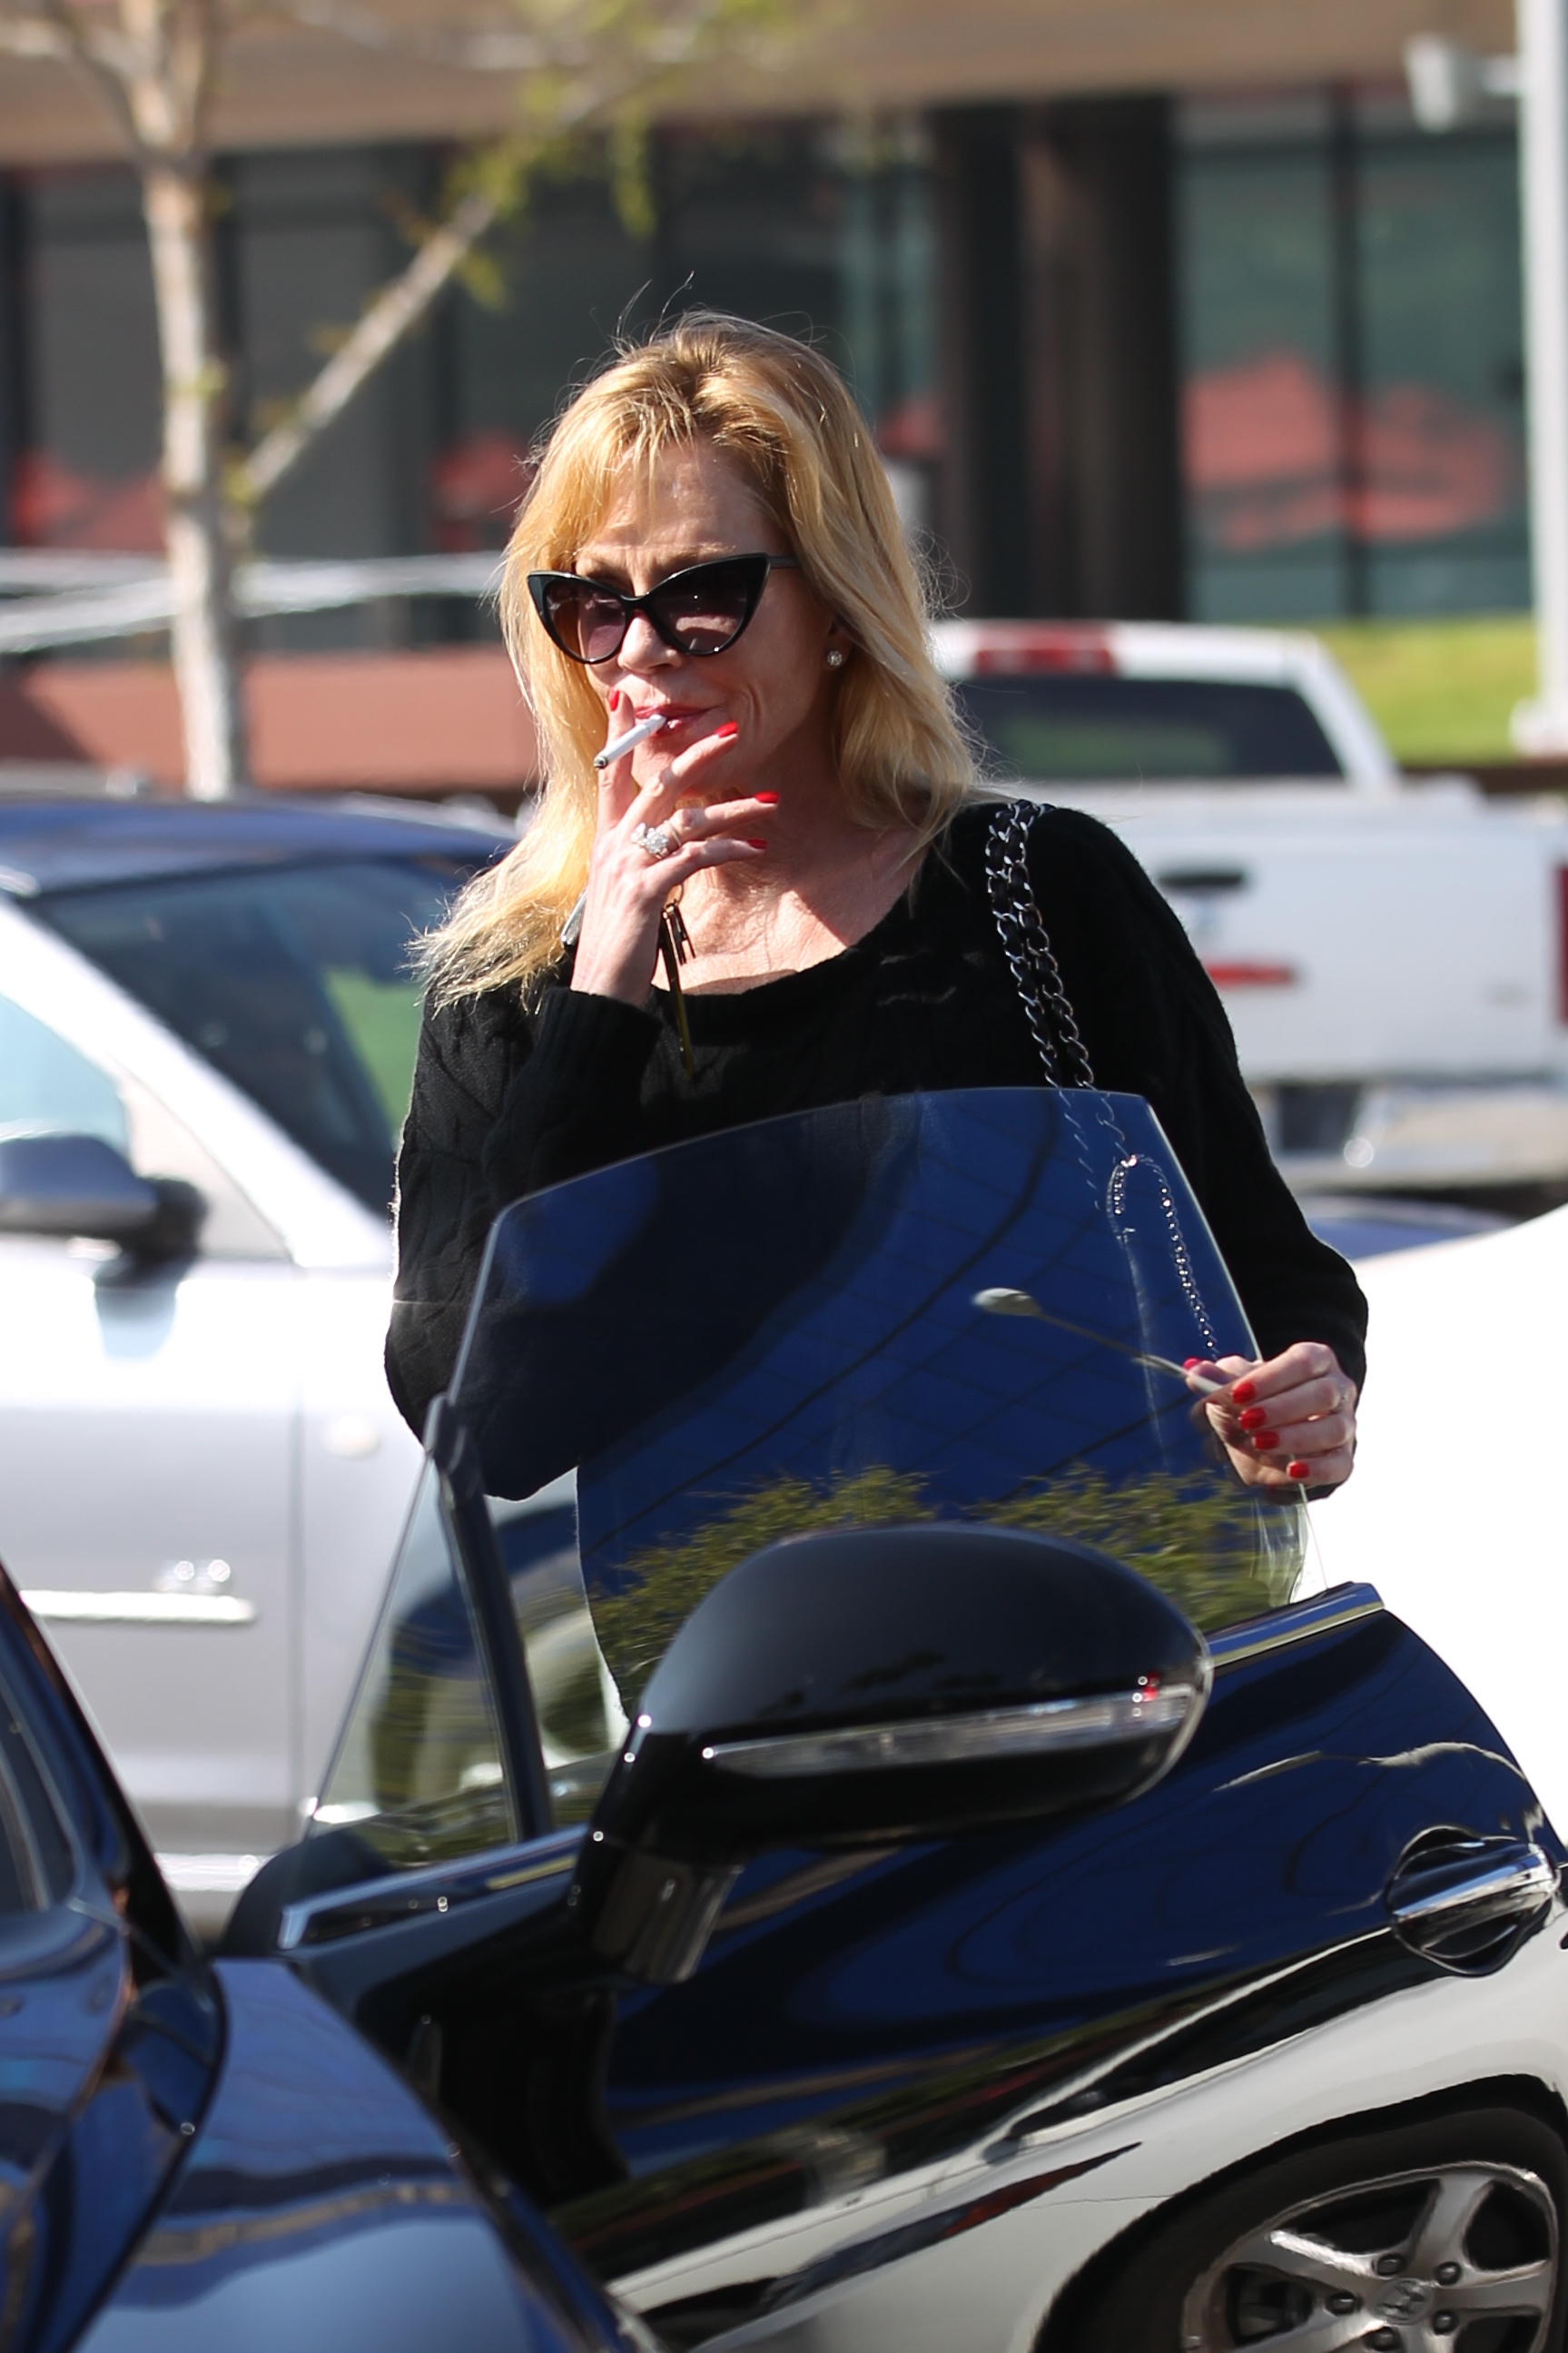 Melanie Griffith leaving Zinque cafe on Melrose Avenue                                    Featuring: Melanie Griffith                  Where: Los Angeles, California, United States                  When: 19 Feb 2015                  Credit: Owen Beiny/WENN.com